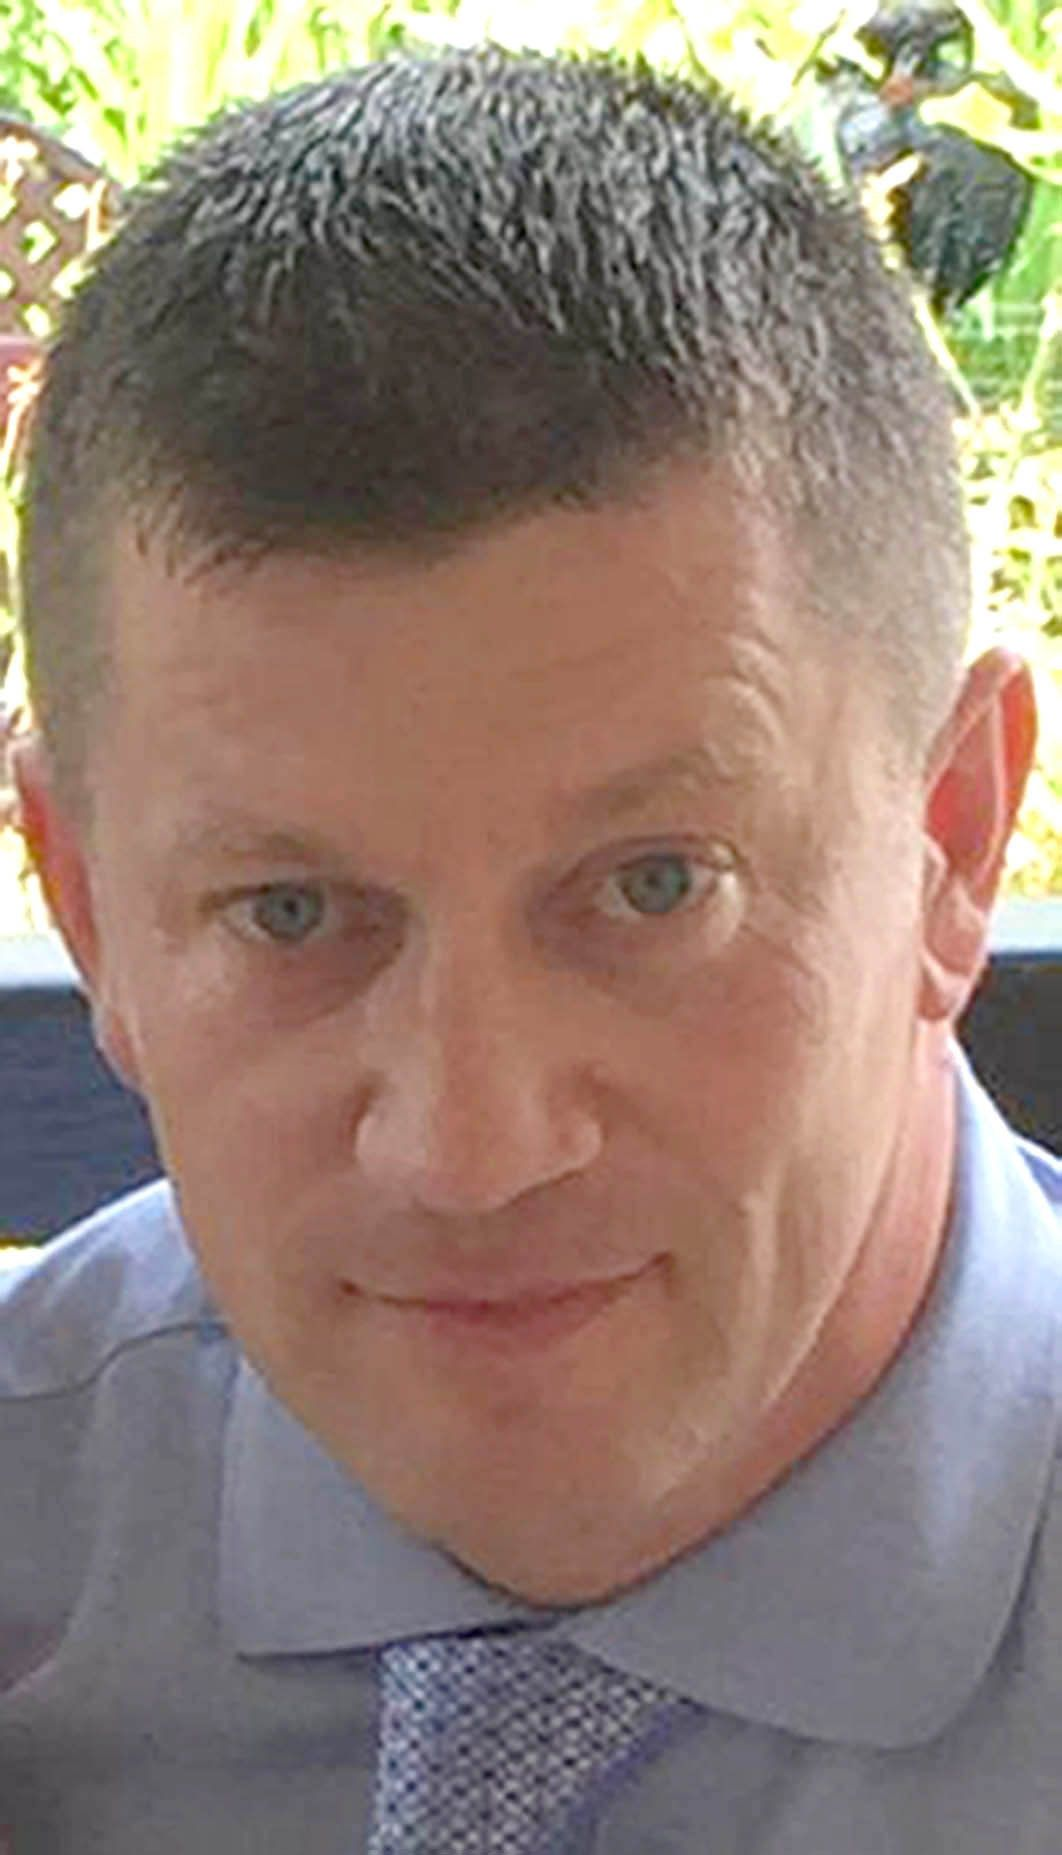 Murdered PC Keith Palmer's Family Remember His 'Selfless